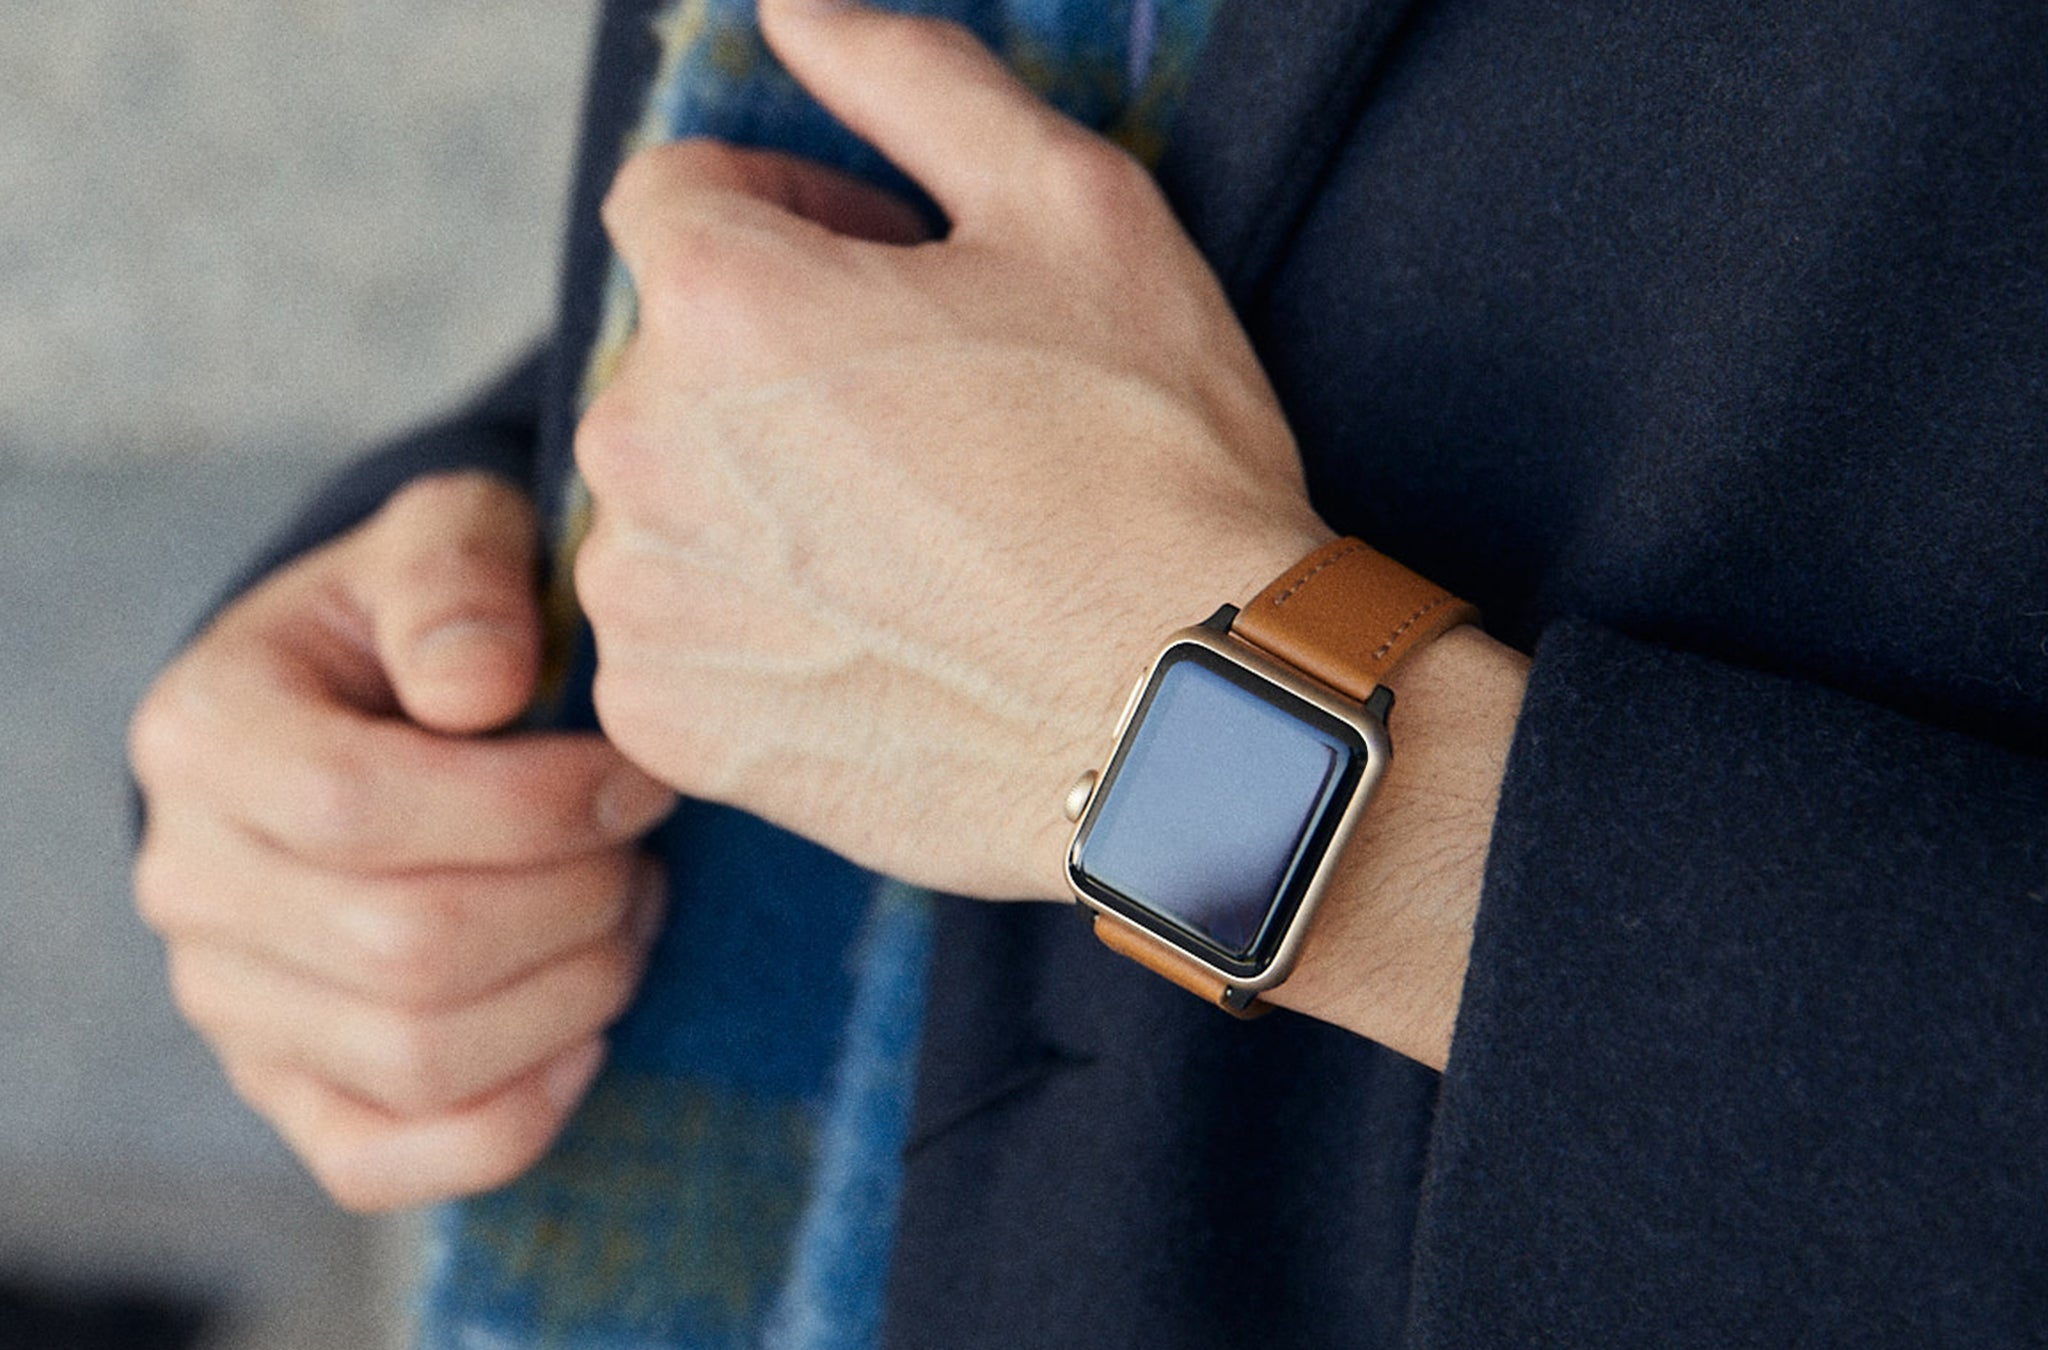 The 24mm Watch Band in Technik-Leather 2.0 in Caramel